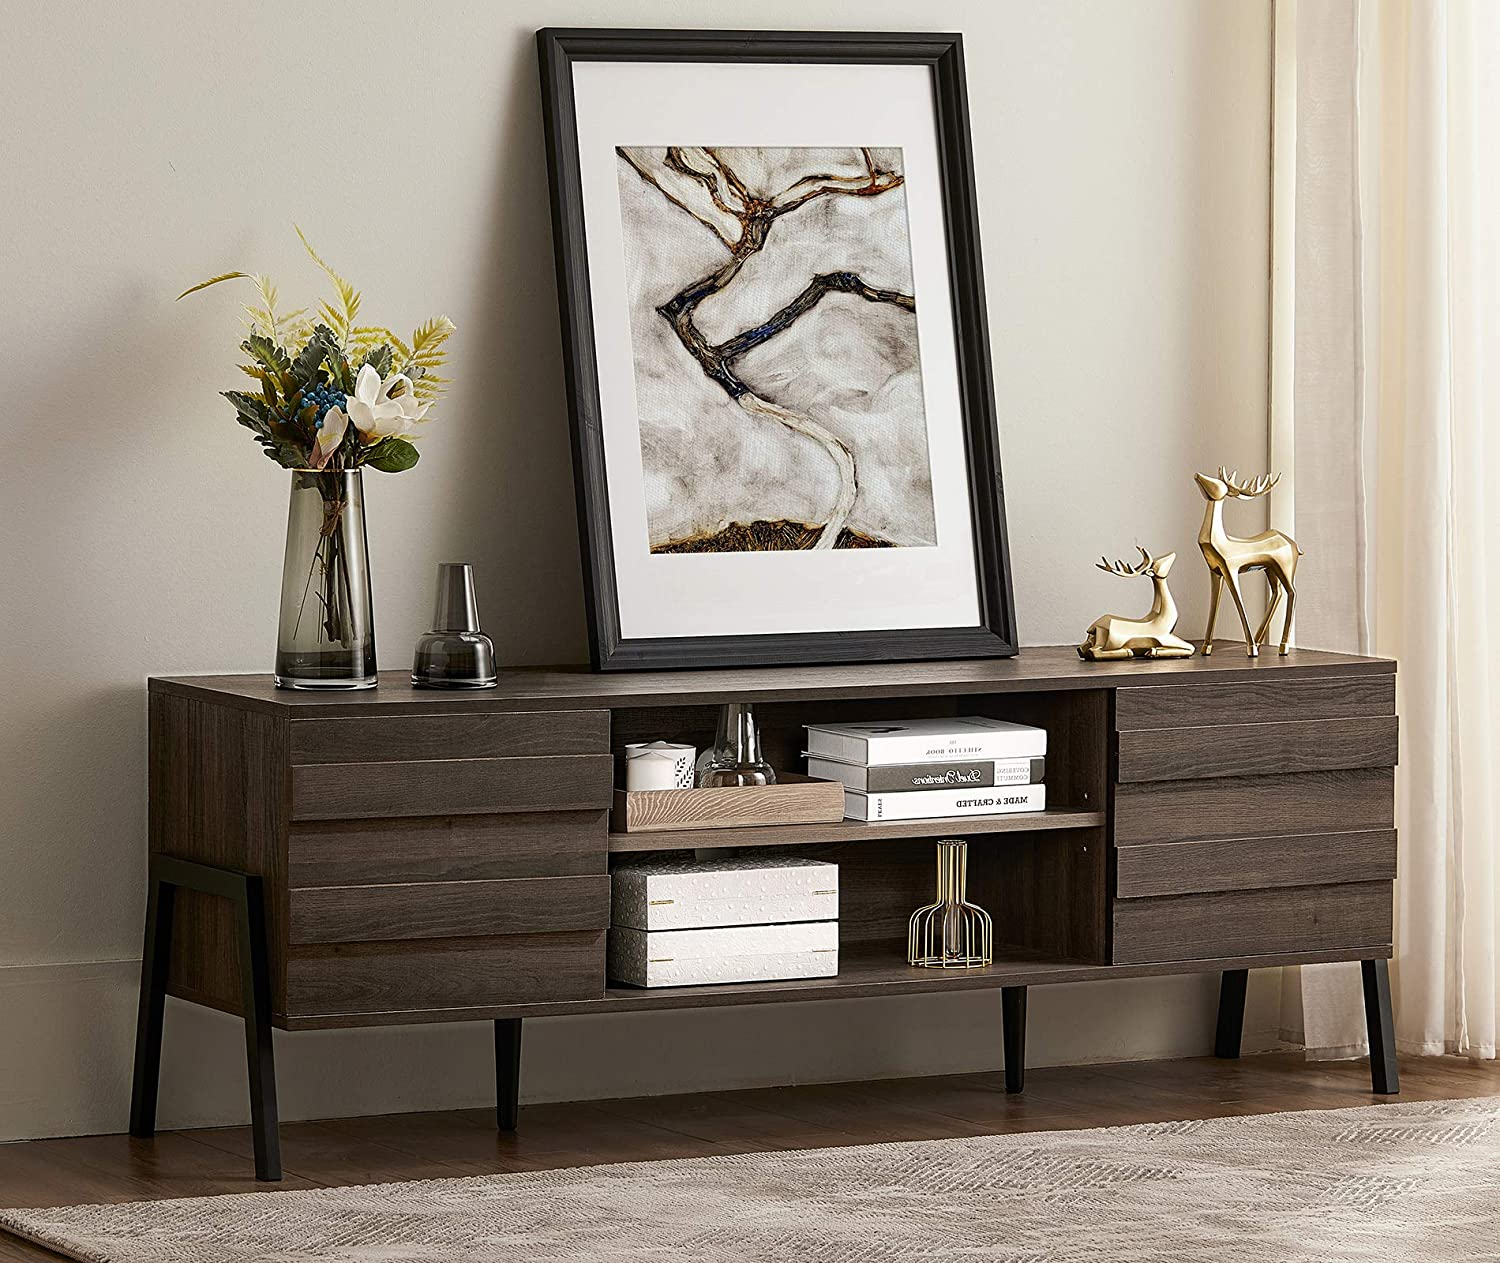 WAMPAT Mid-Century Modern TV Stand for TVs up to 65 inch Flat Screen Wood TV Console Media Cabinet with Storage, Home Entertainment Center Living Room Bedroom and Office